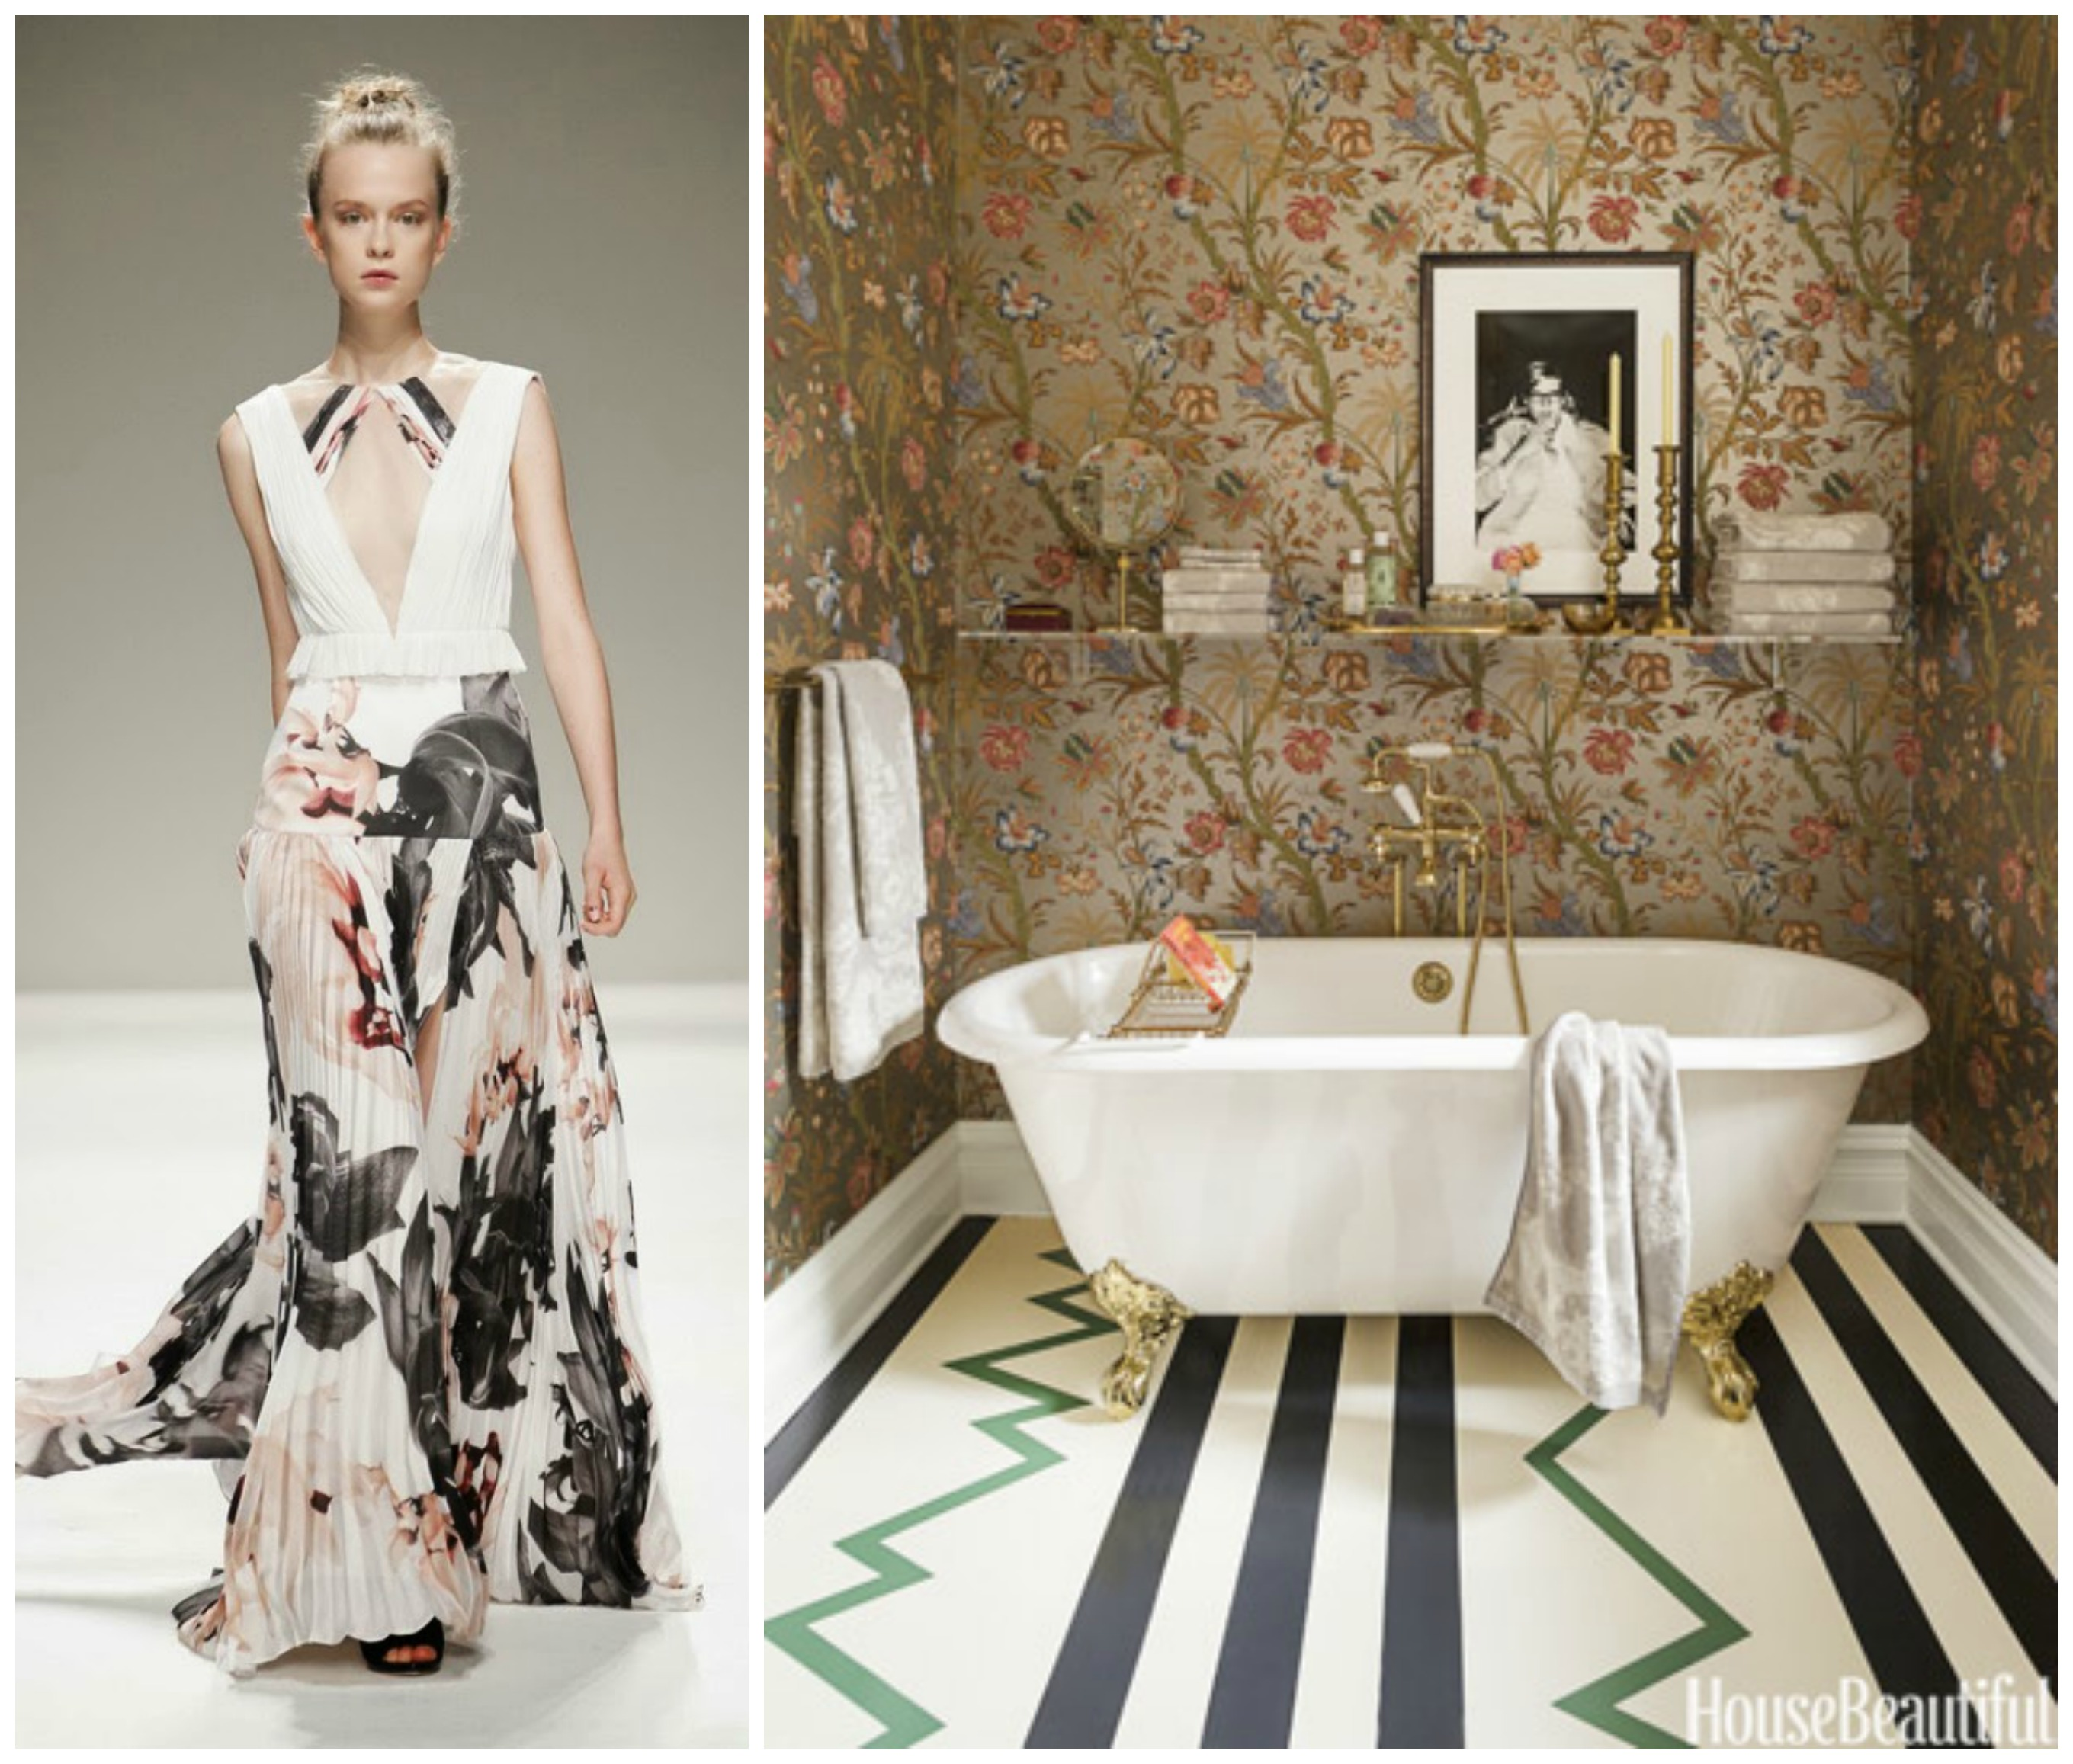 Fashion Bathroom Decor: Inspiring! Couture Fashion Paired With Luxury Bathrooms